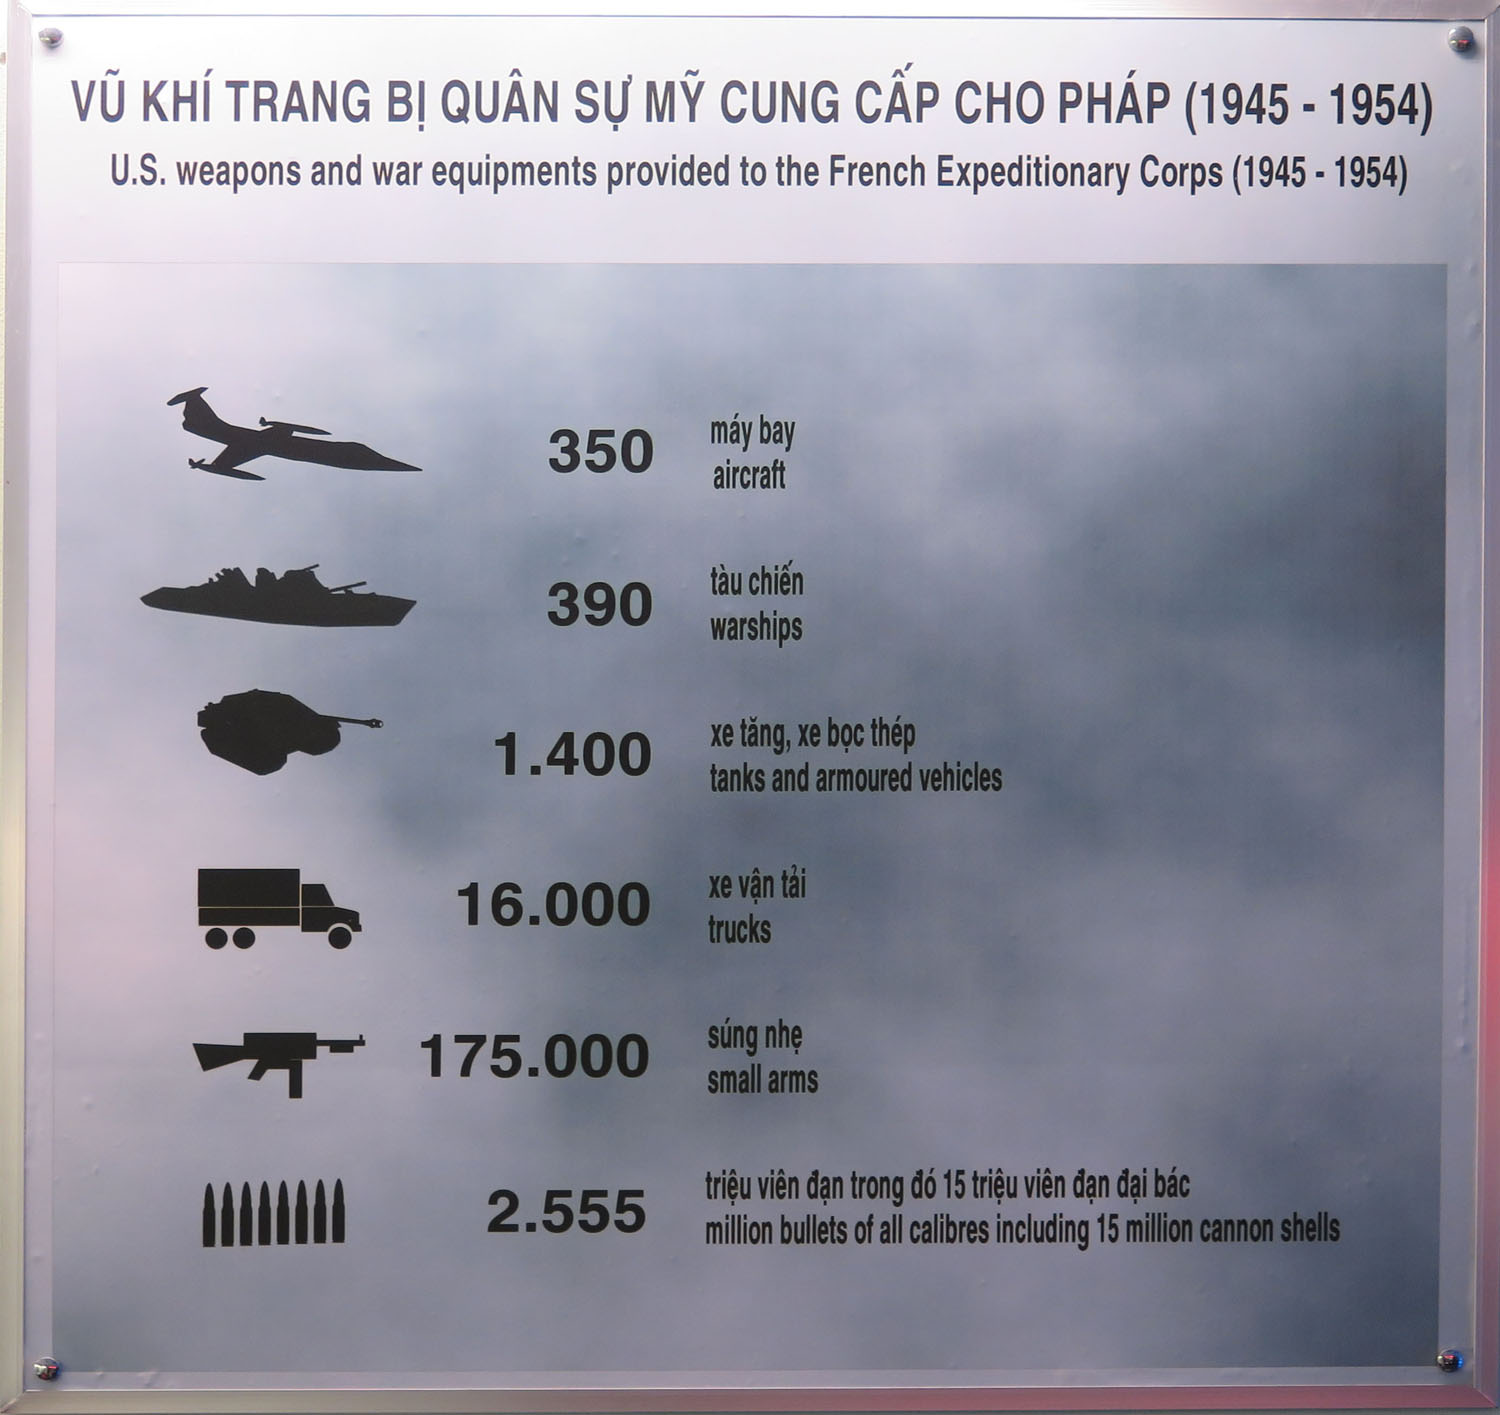 Vietnam-Ho-Chi-Minh-City-War-Remnants-Museum-US-Support-Of-French